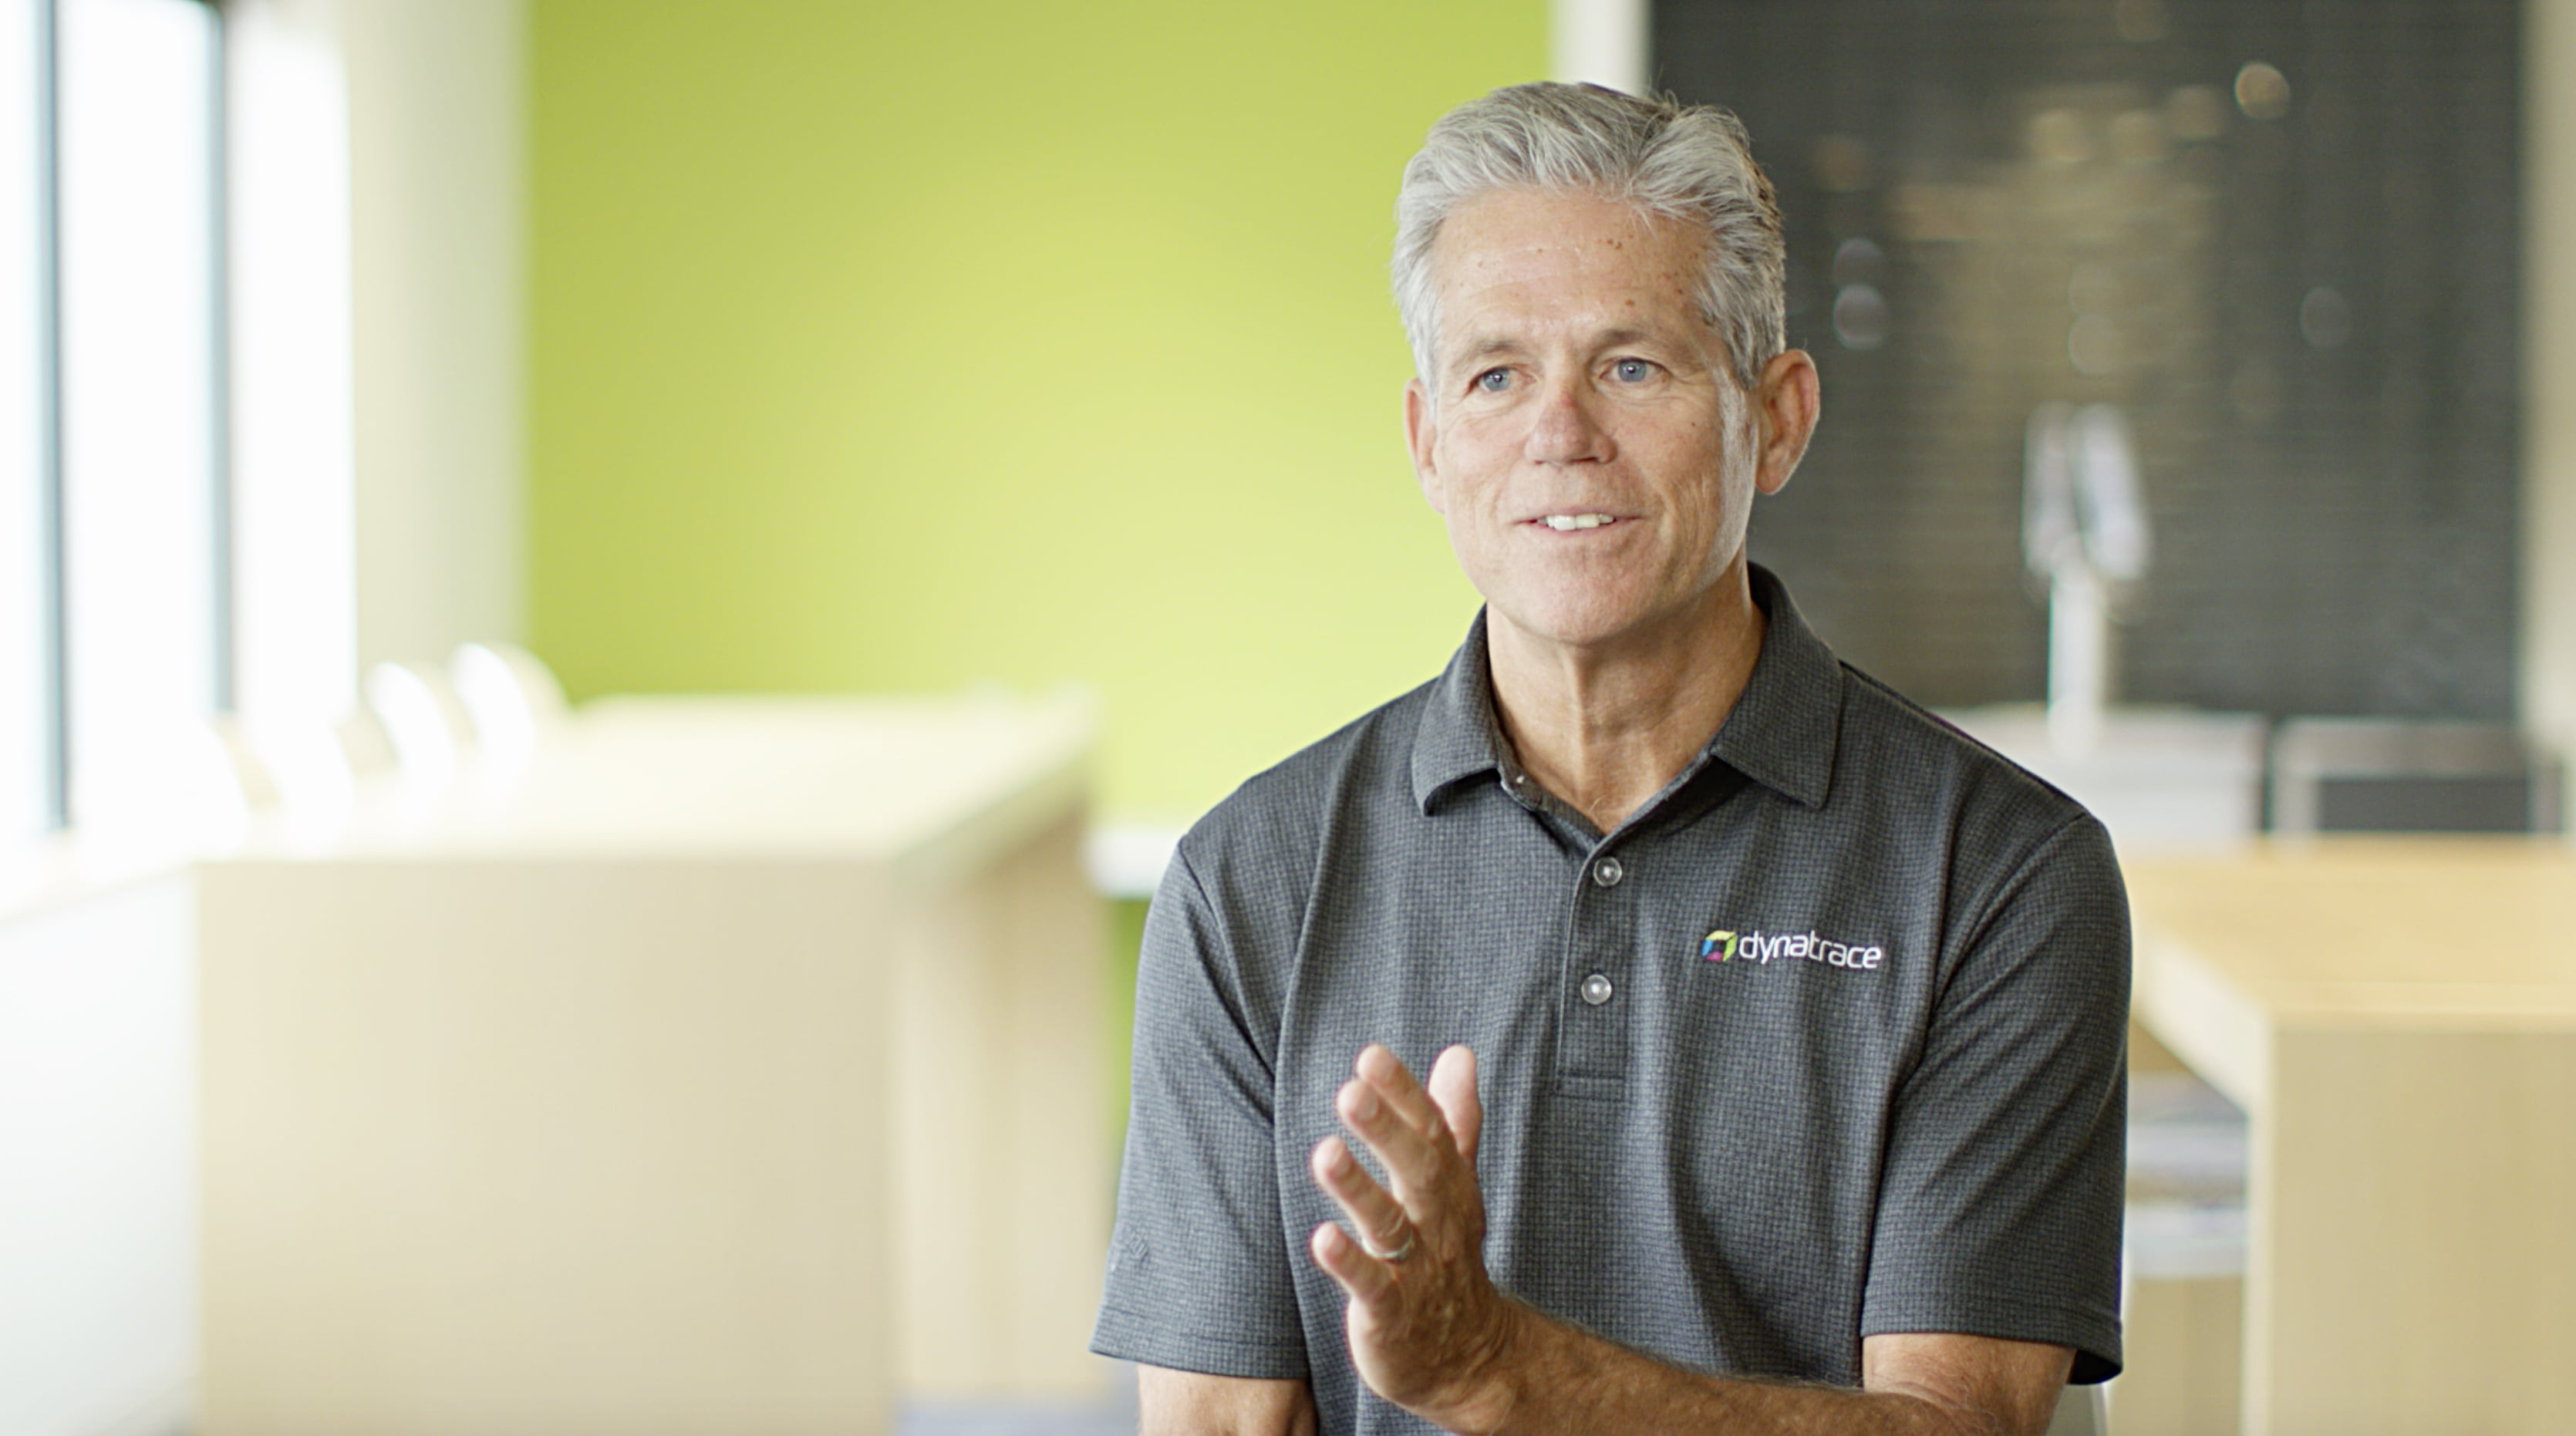 John Van Siclen, CEO of Dynatrace